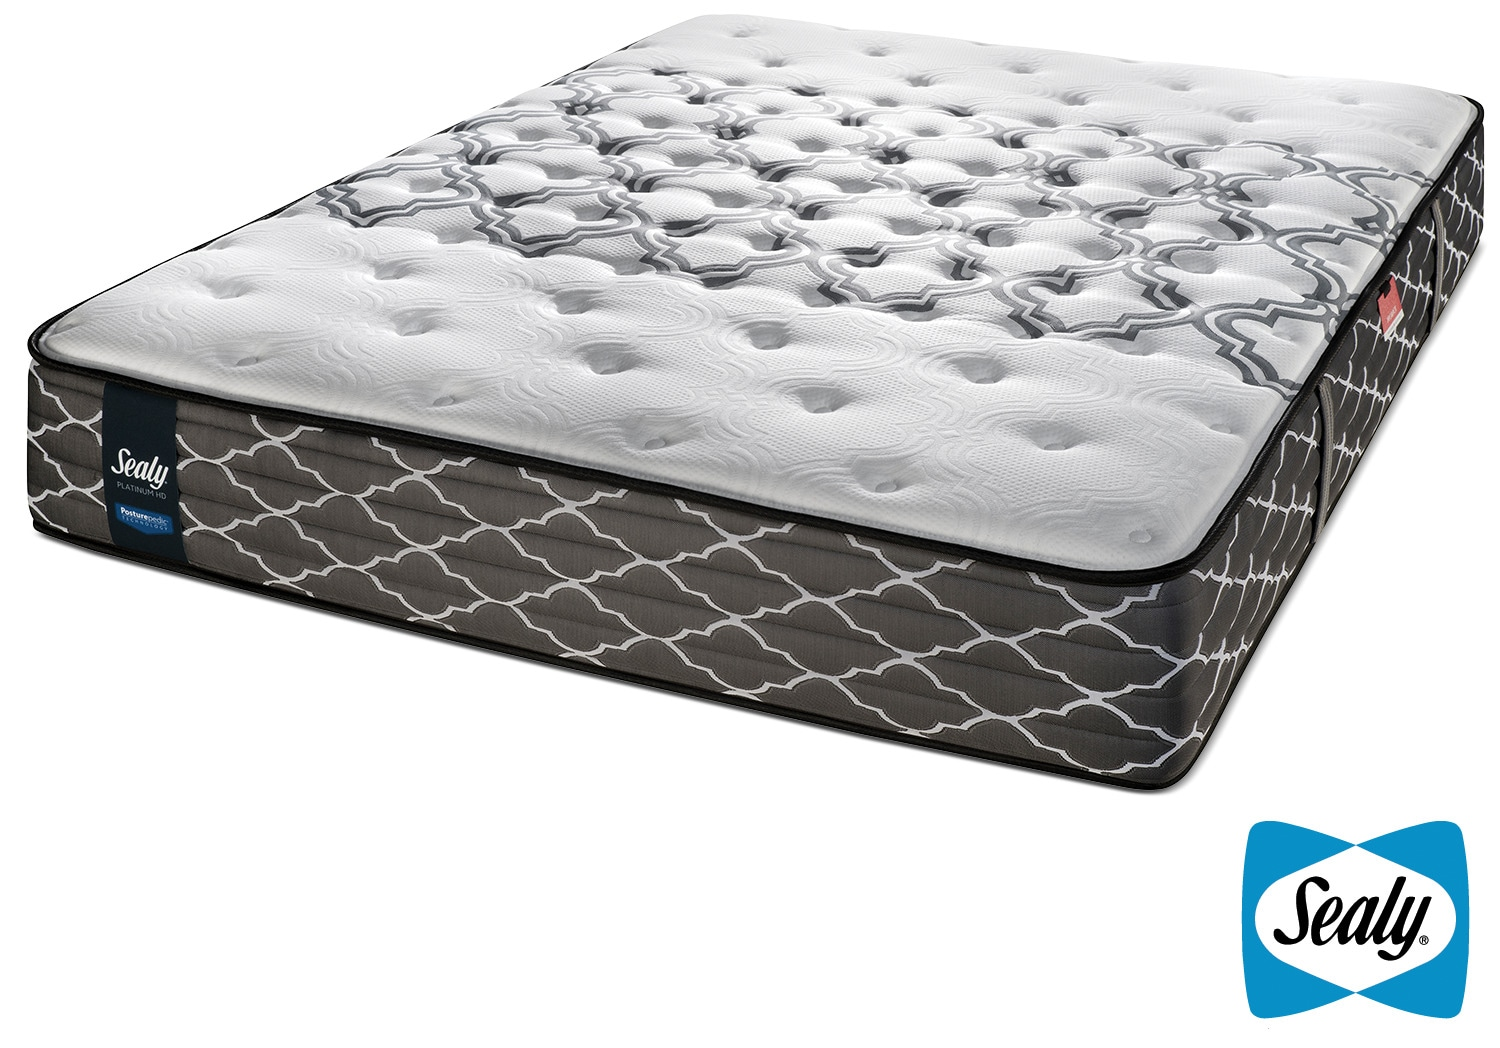 Sealy Late Night Hybrid Extra Firm Queen Mattress